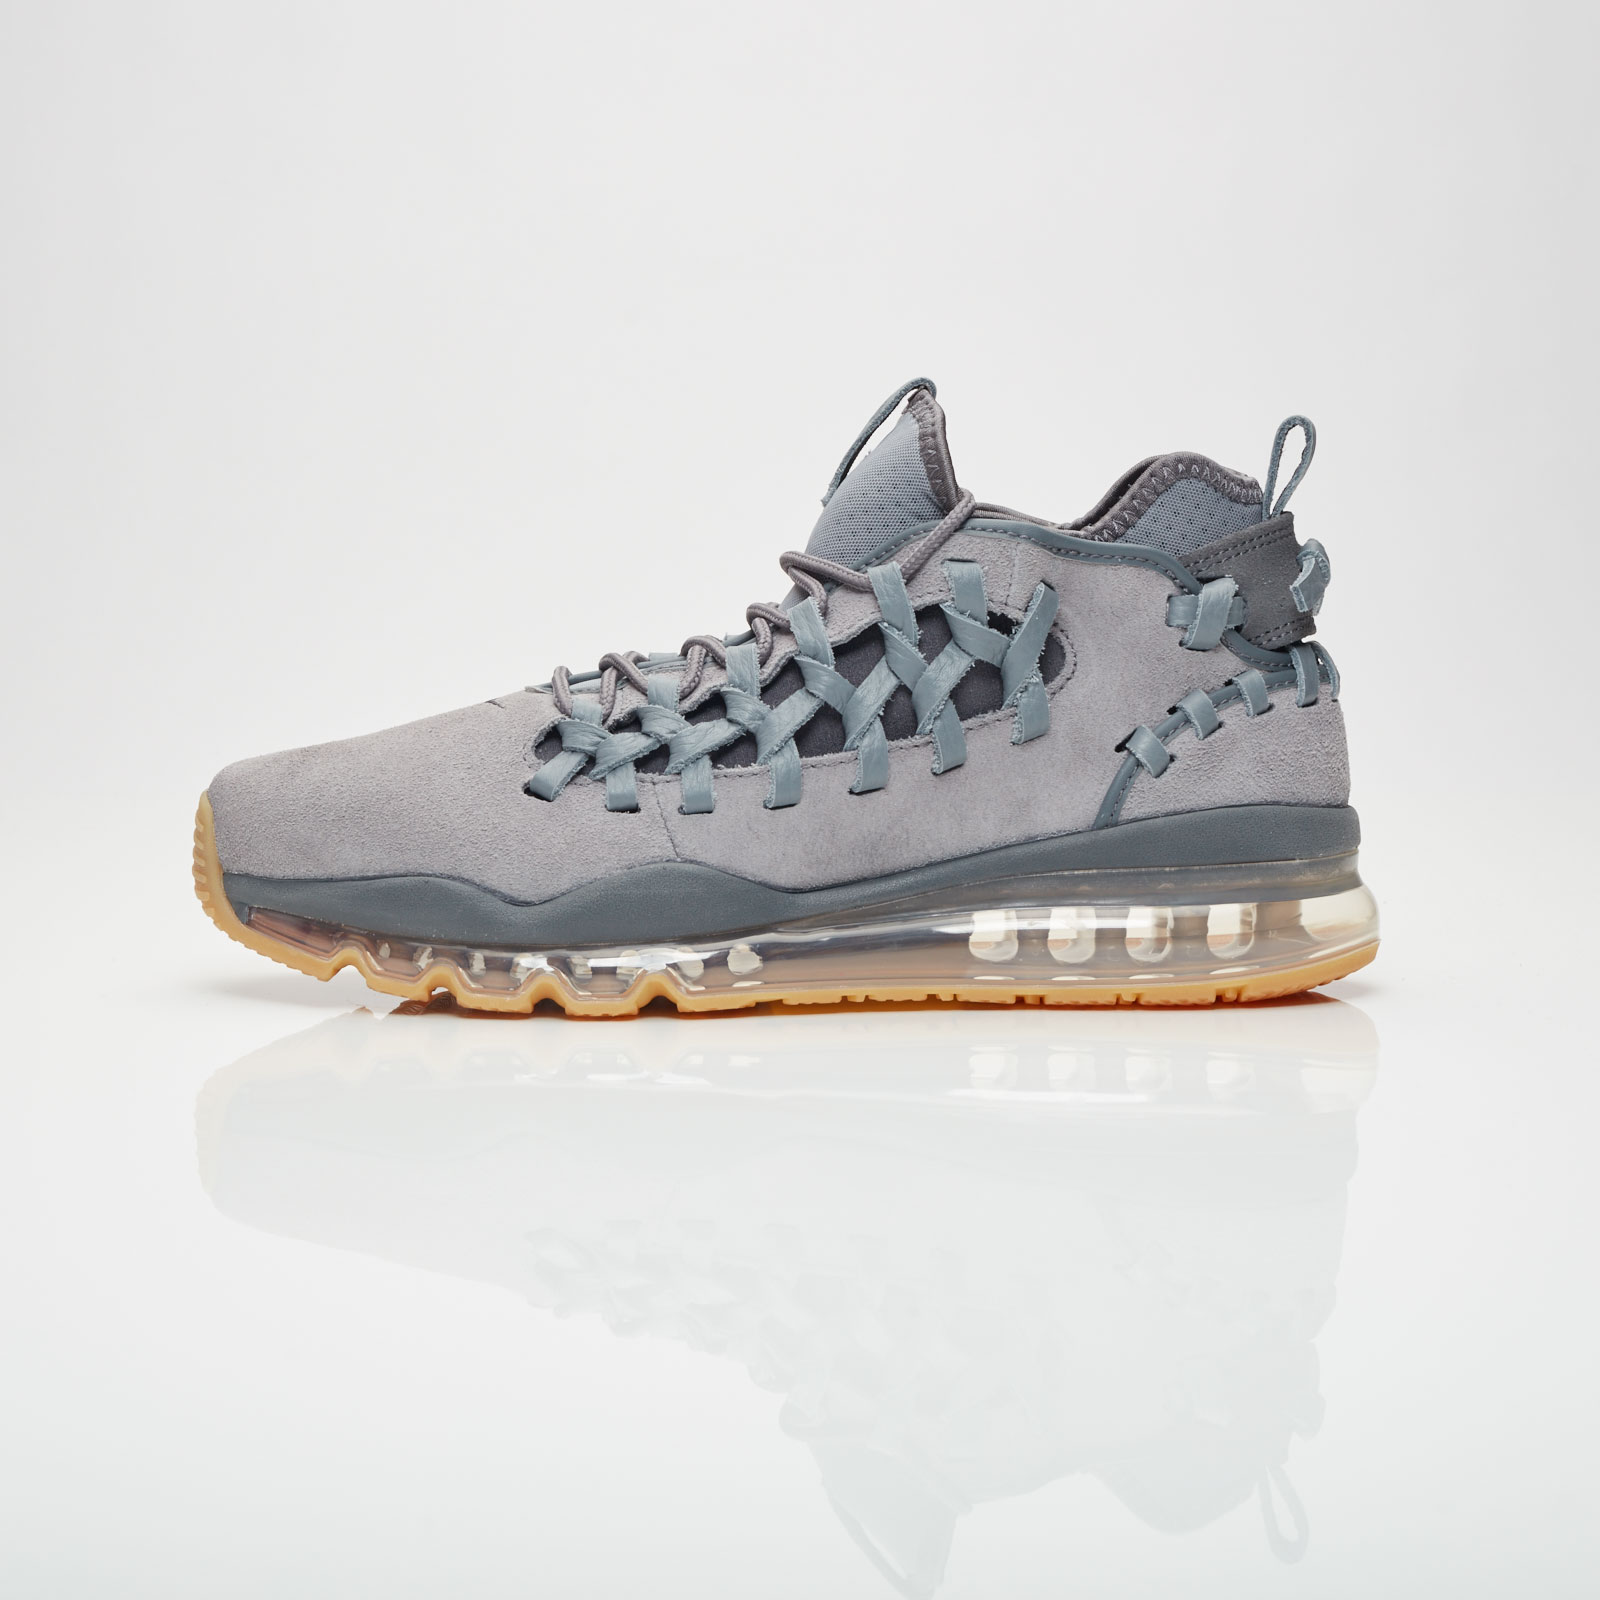 factory authentic f2da6 aa9a6 Nike Air Max TR17 - 880996-002 - Sneakersnstuff   sneakers   streetwear  online since 1999